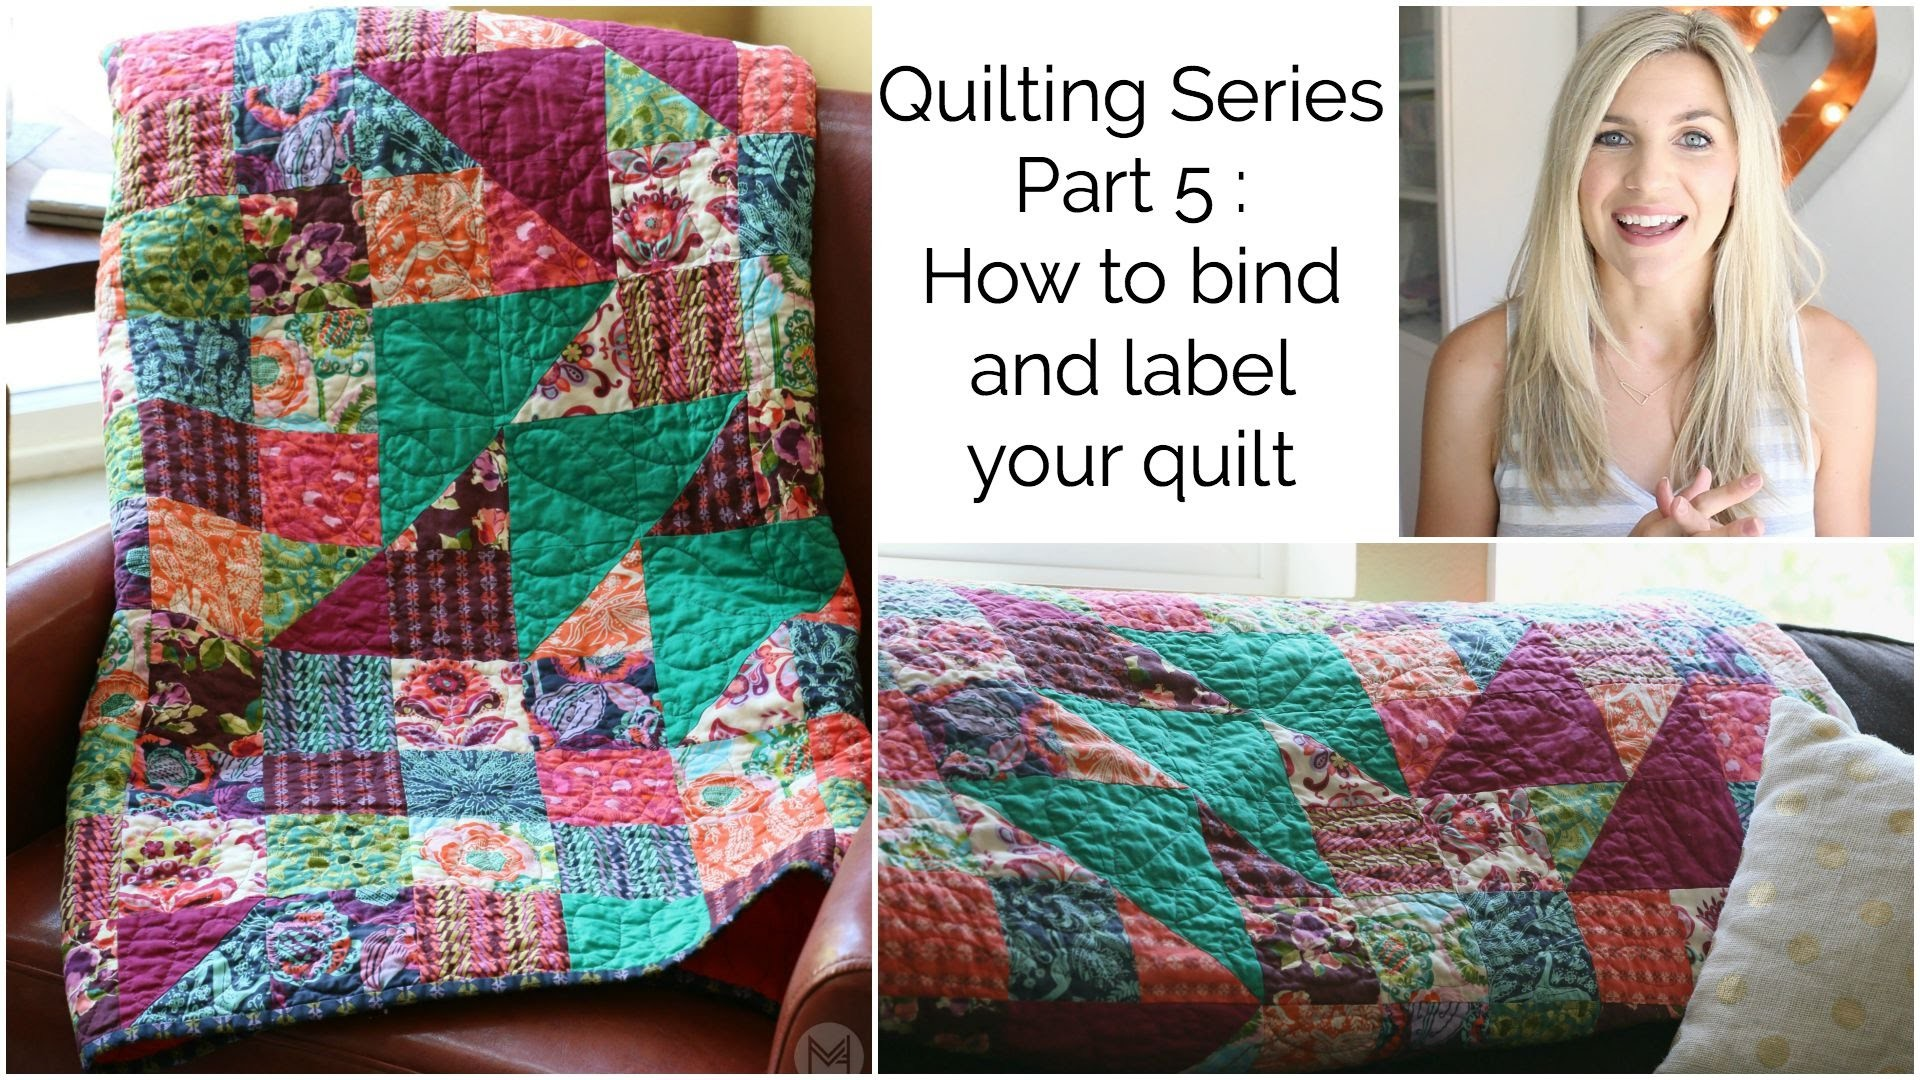 Quilting Series Part 5: How to bind and label you quilt